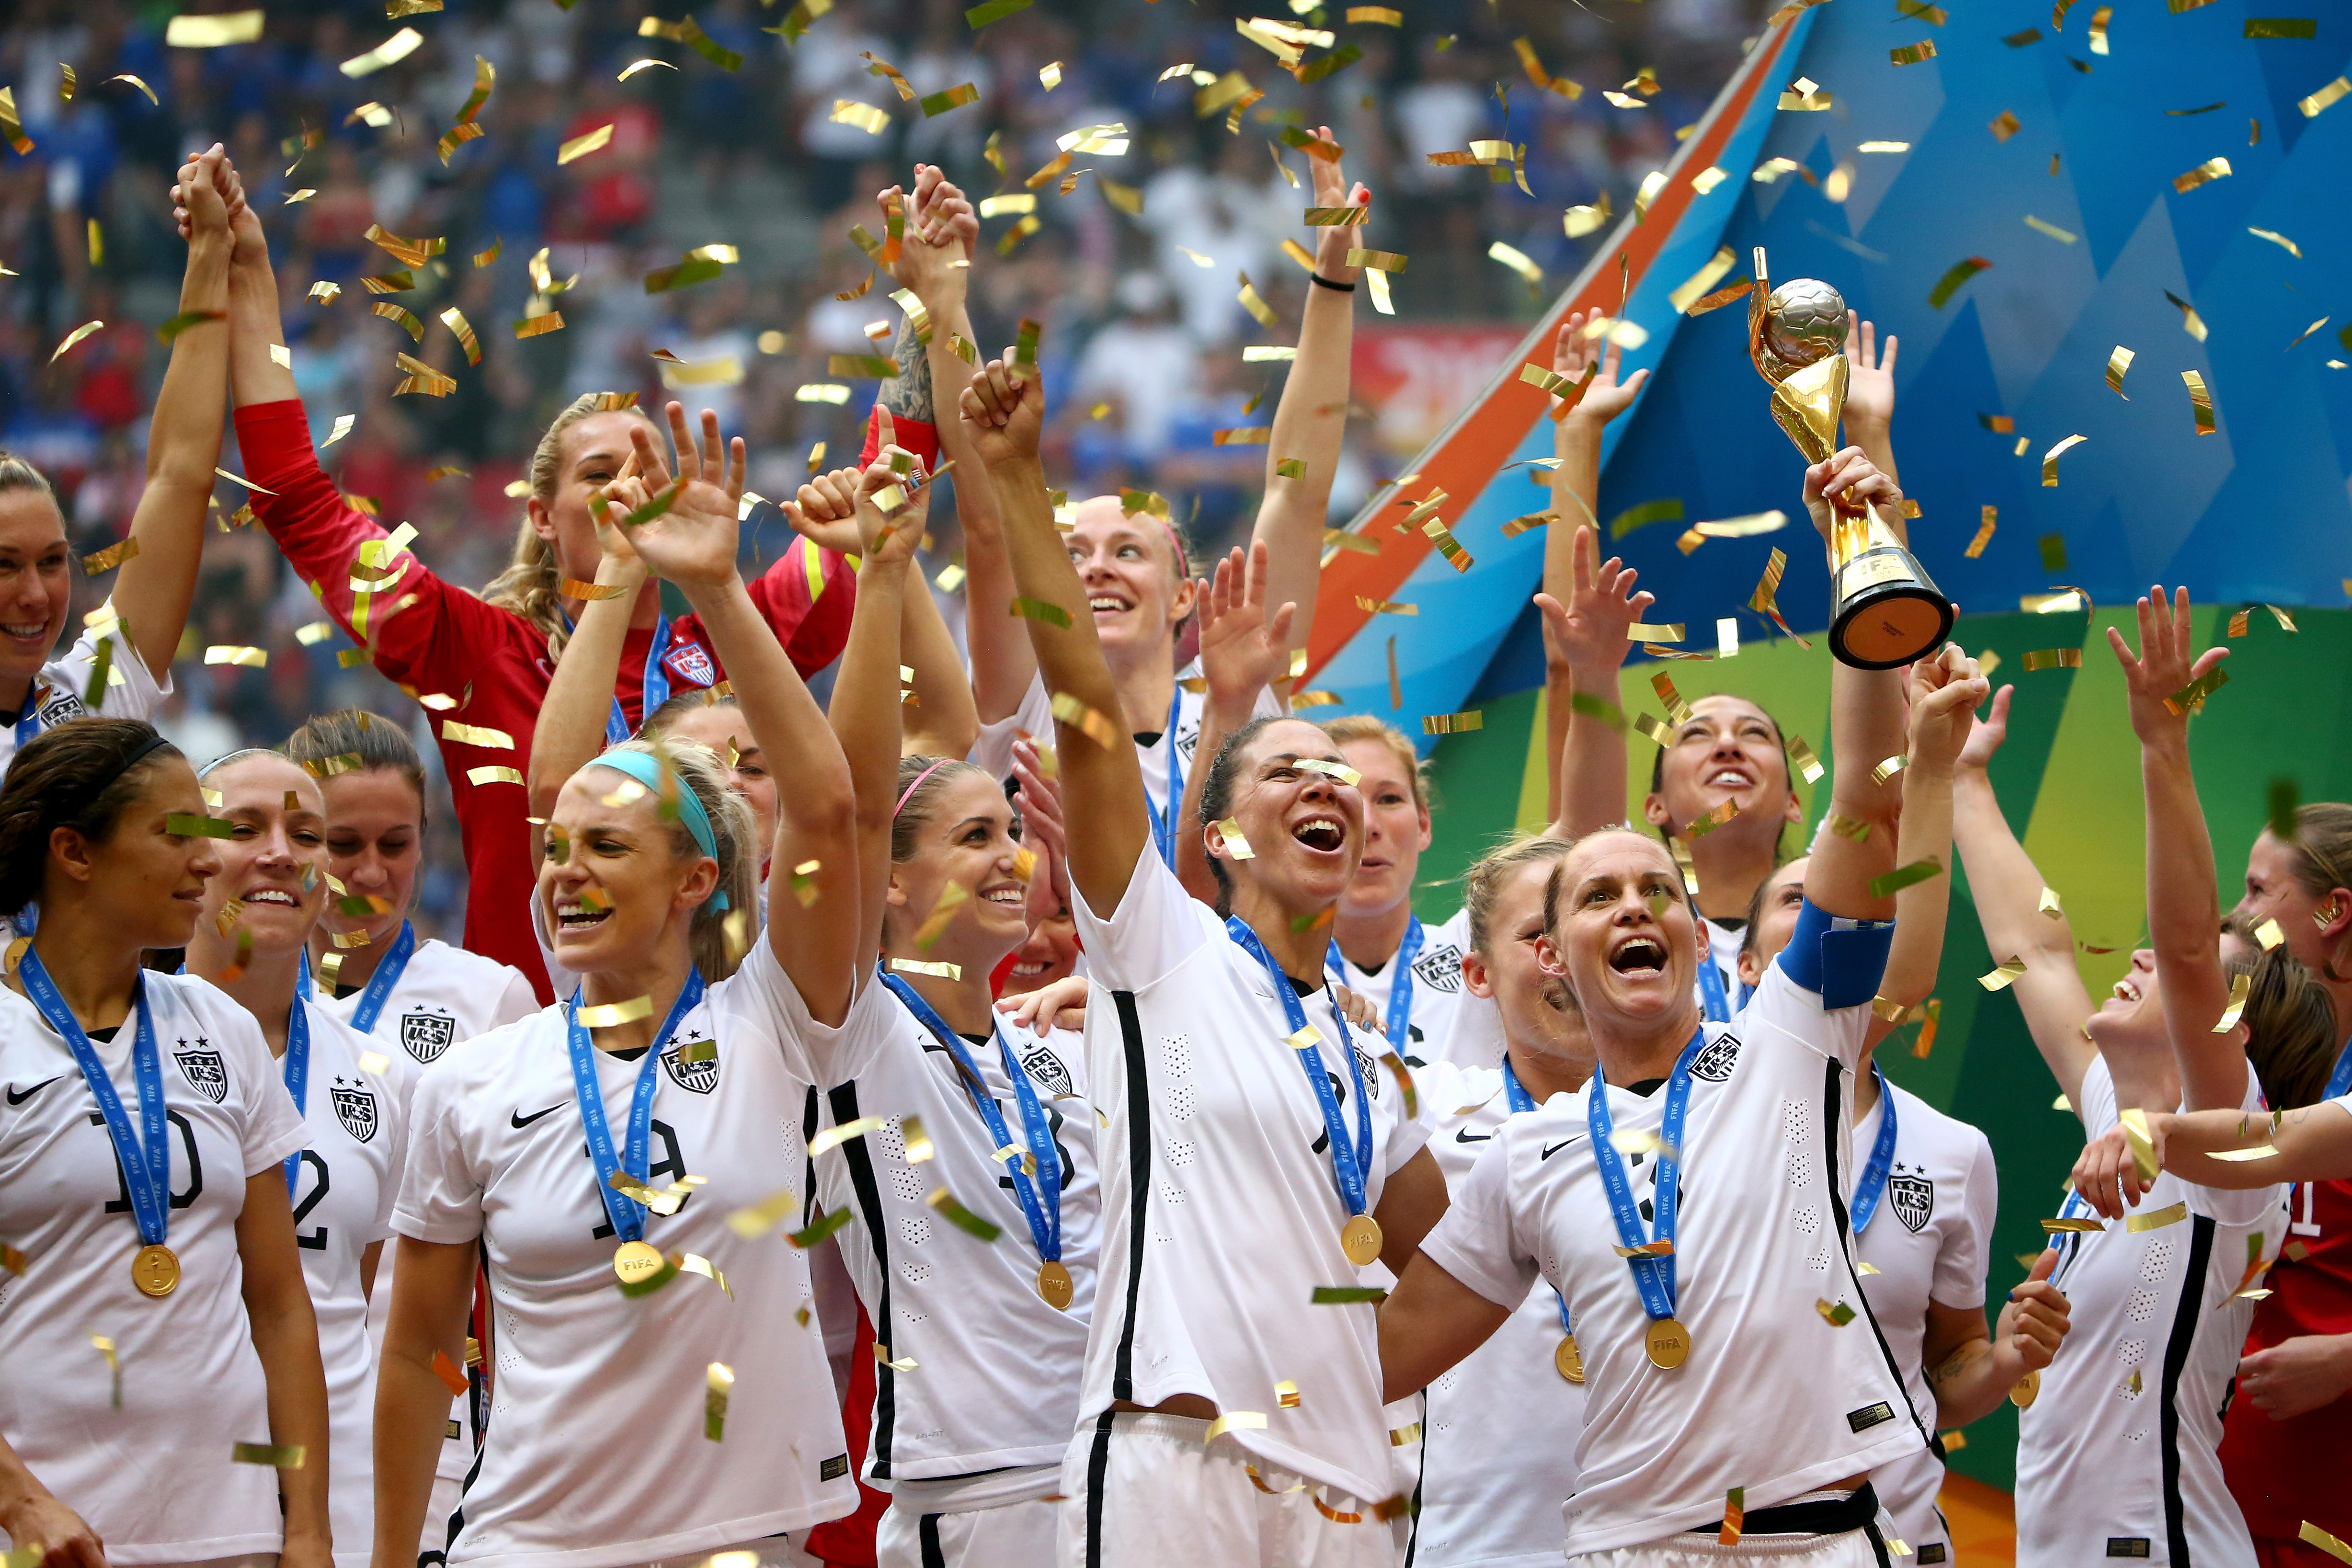 Christie Rampone #3 of the United States of America holds the World Cup Trophy after their 5-2 win over Japan in the FIFA Women's World Cup Canada 2015 Final at BC Place Stadium on July 5, 2015 in Vancouver, Canada. (Photo by Ronald Martinez/Getty Images)